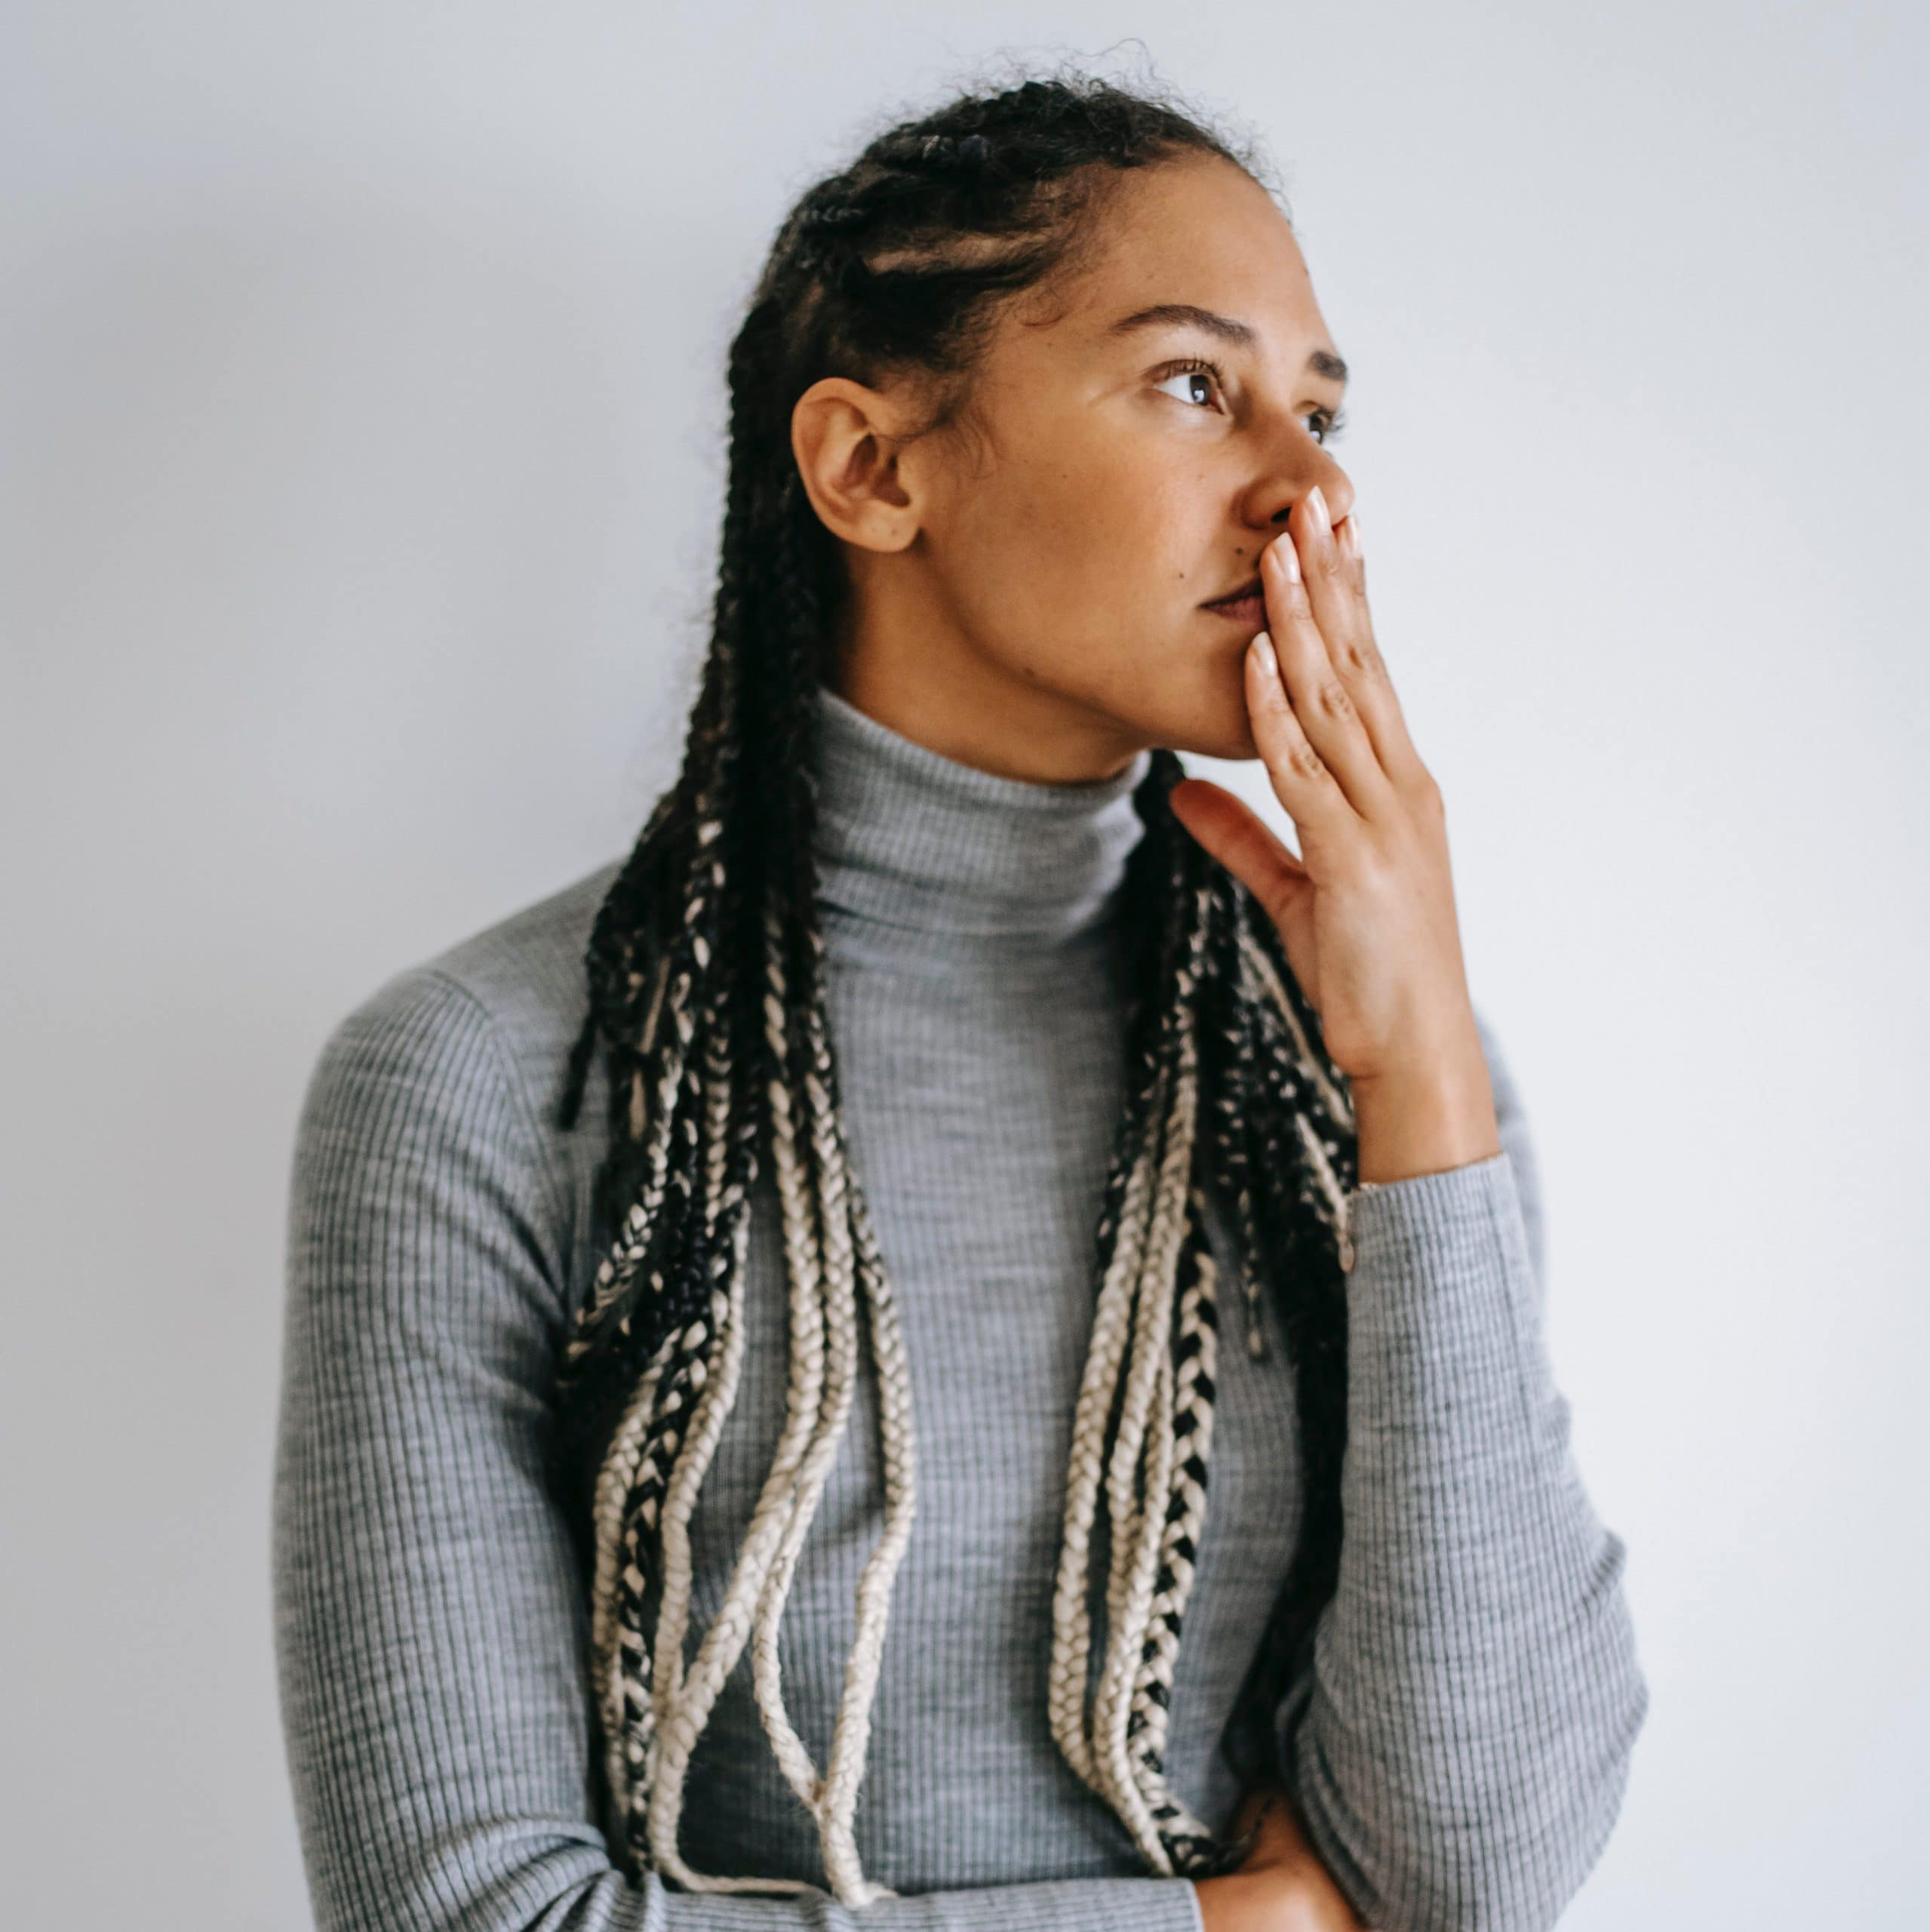 Anxiety can be soothed with sensory based practices. A woman with brown skin and long white-tipped braids anxiously touches her mouth while wearing a gray turtleneck sweater.